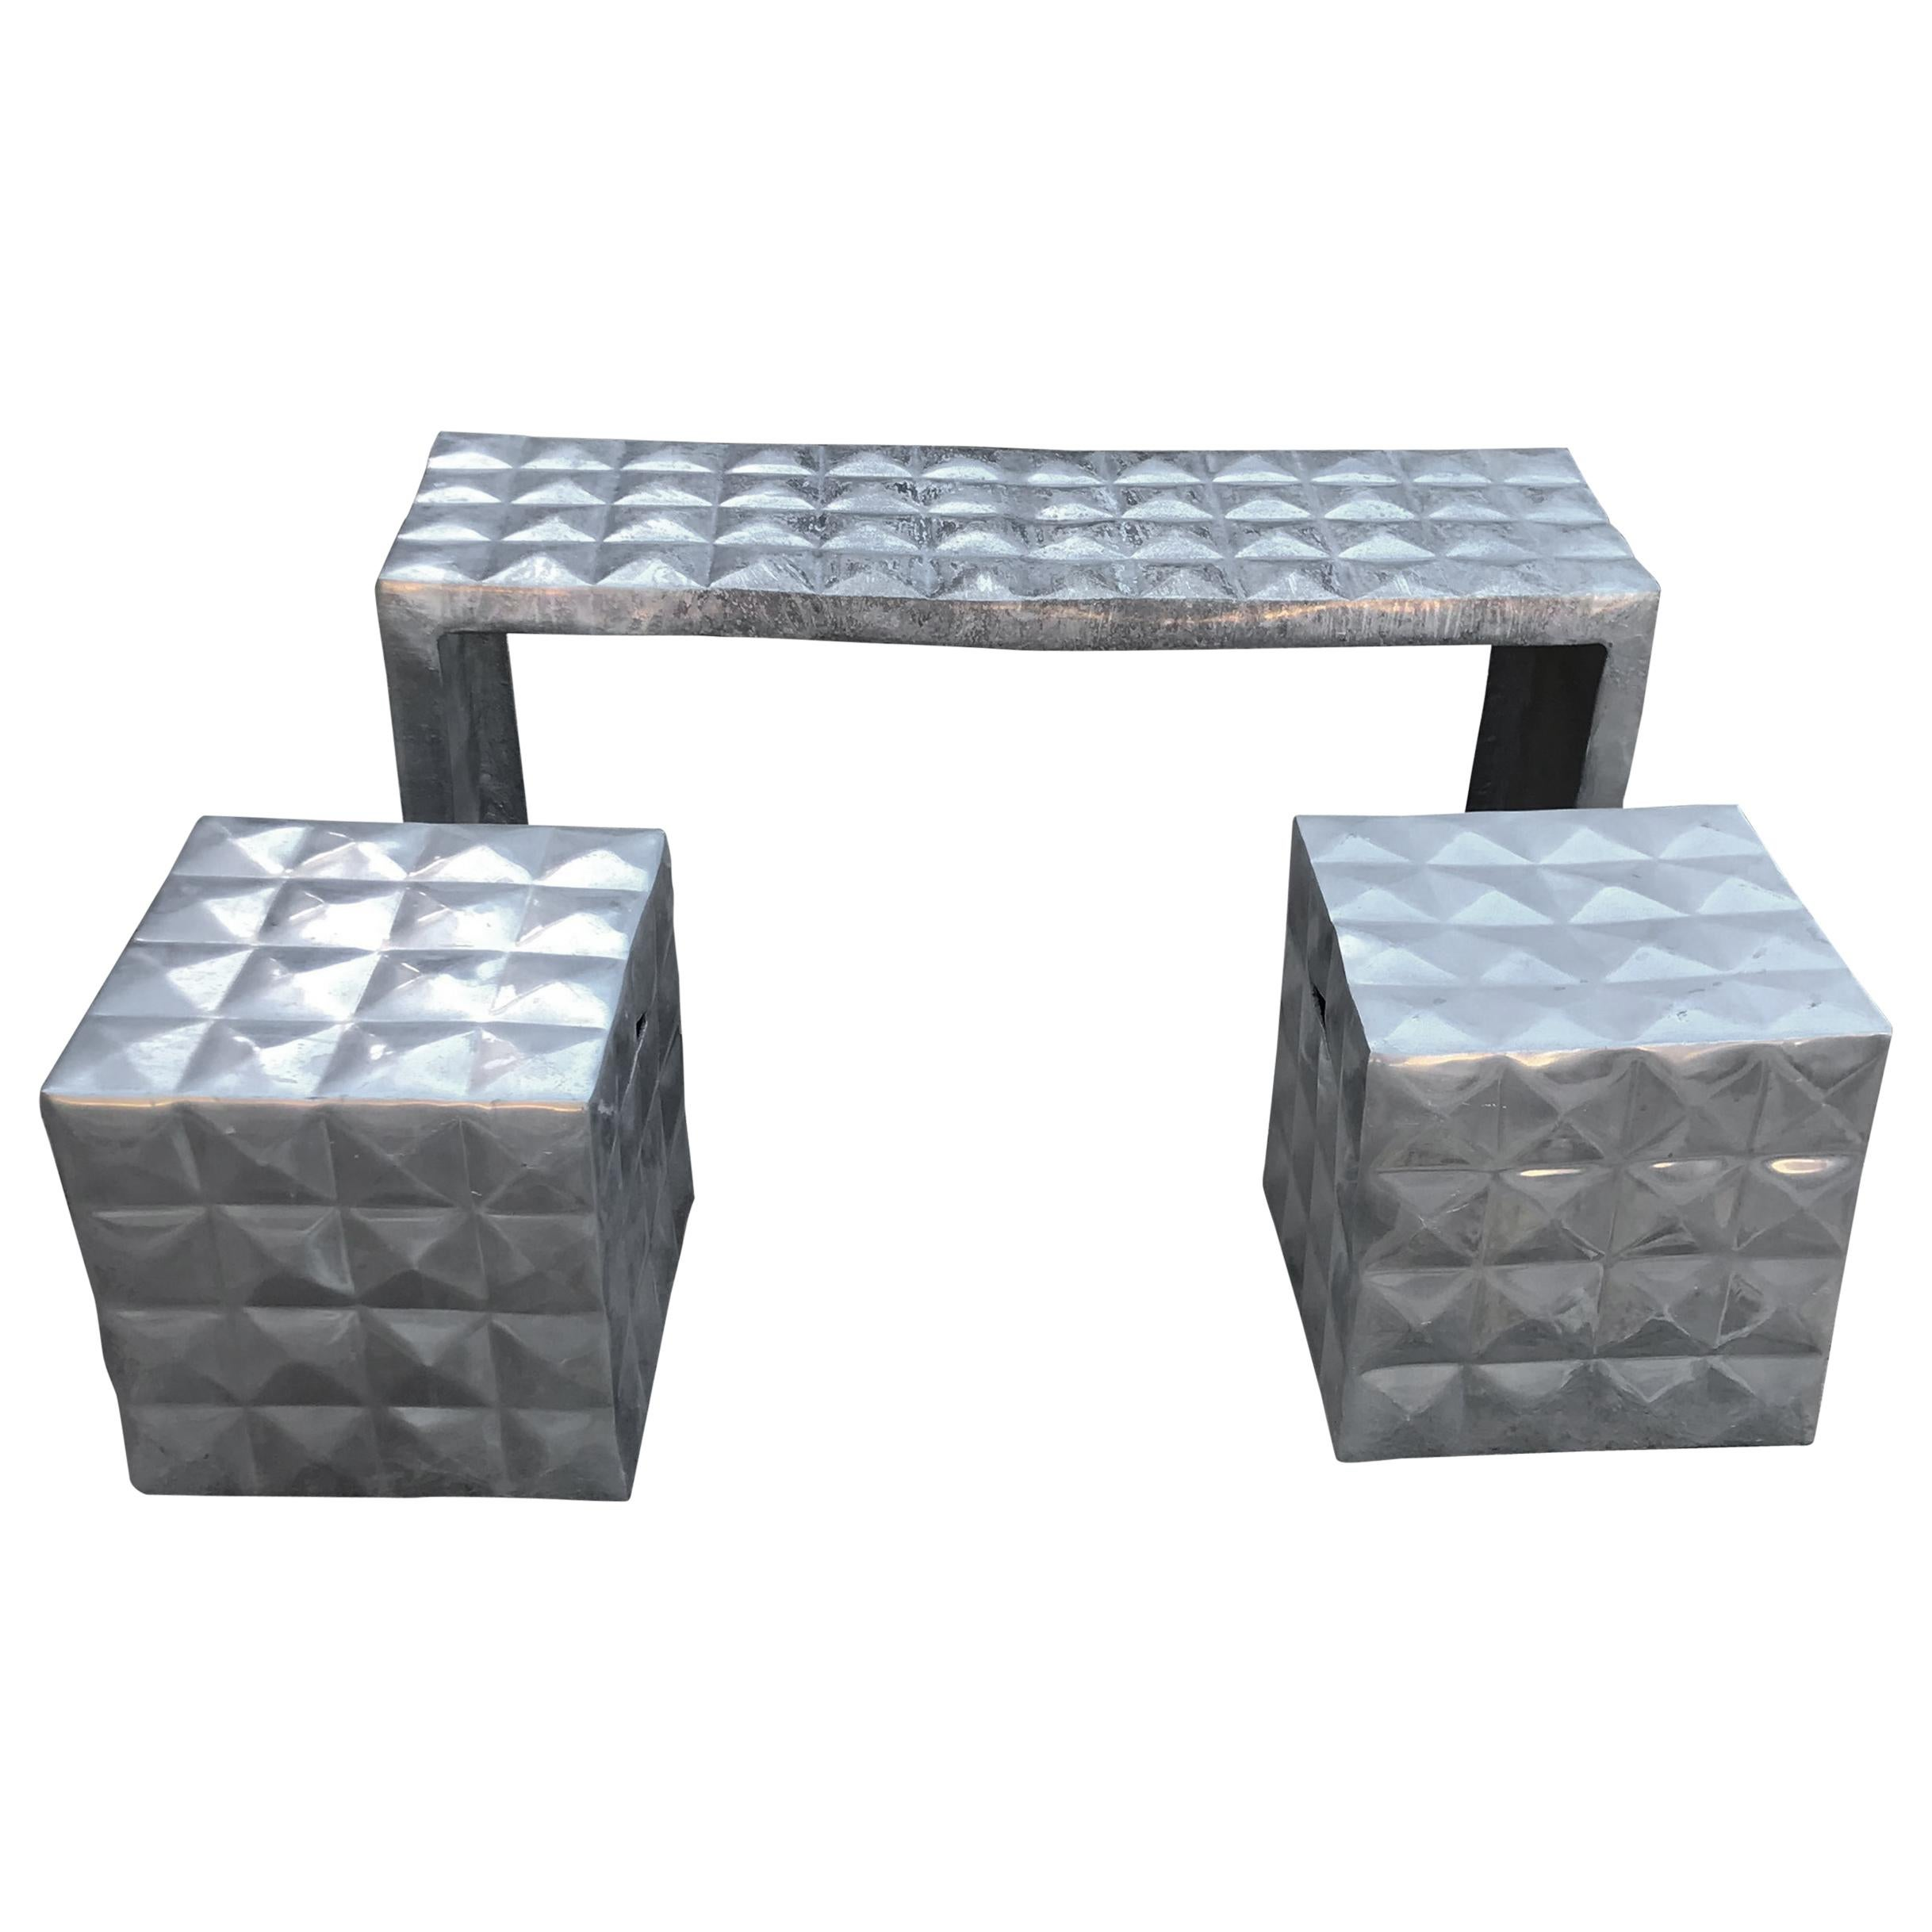 Modern Cube Side Tables & Bench Set in Aluminum 1970 Paul Evans Style